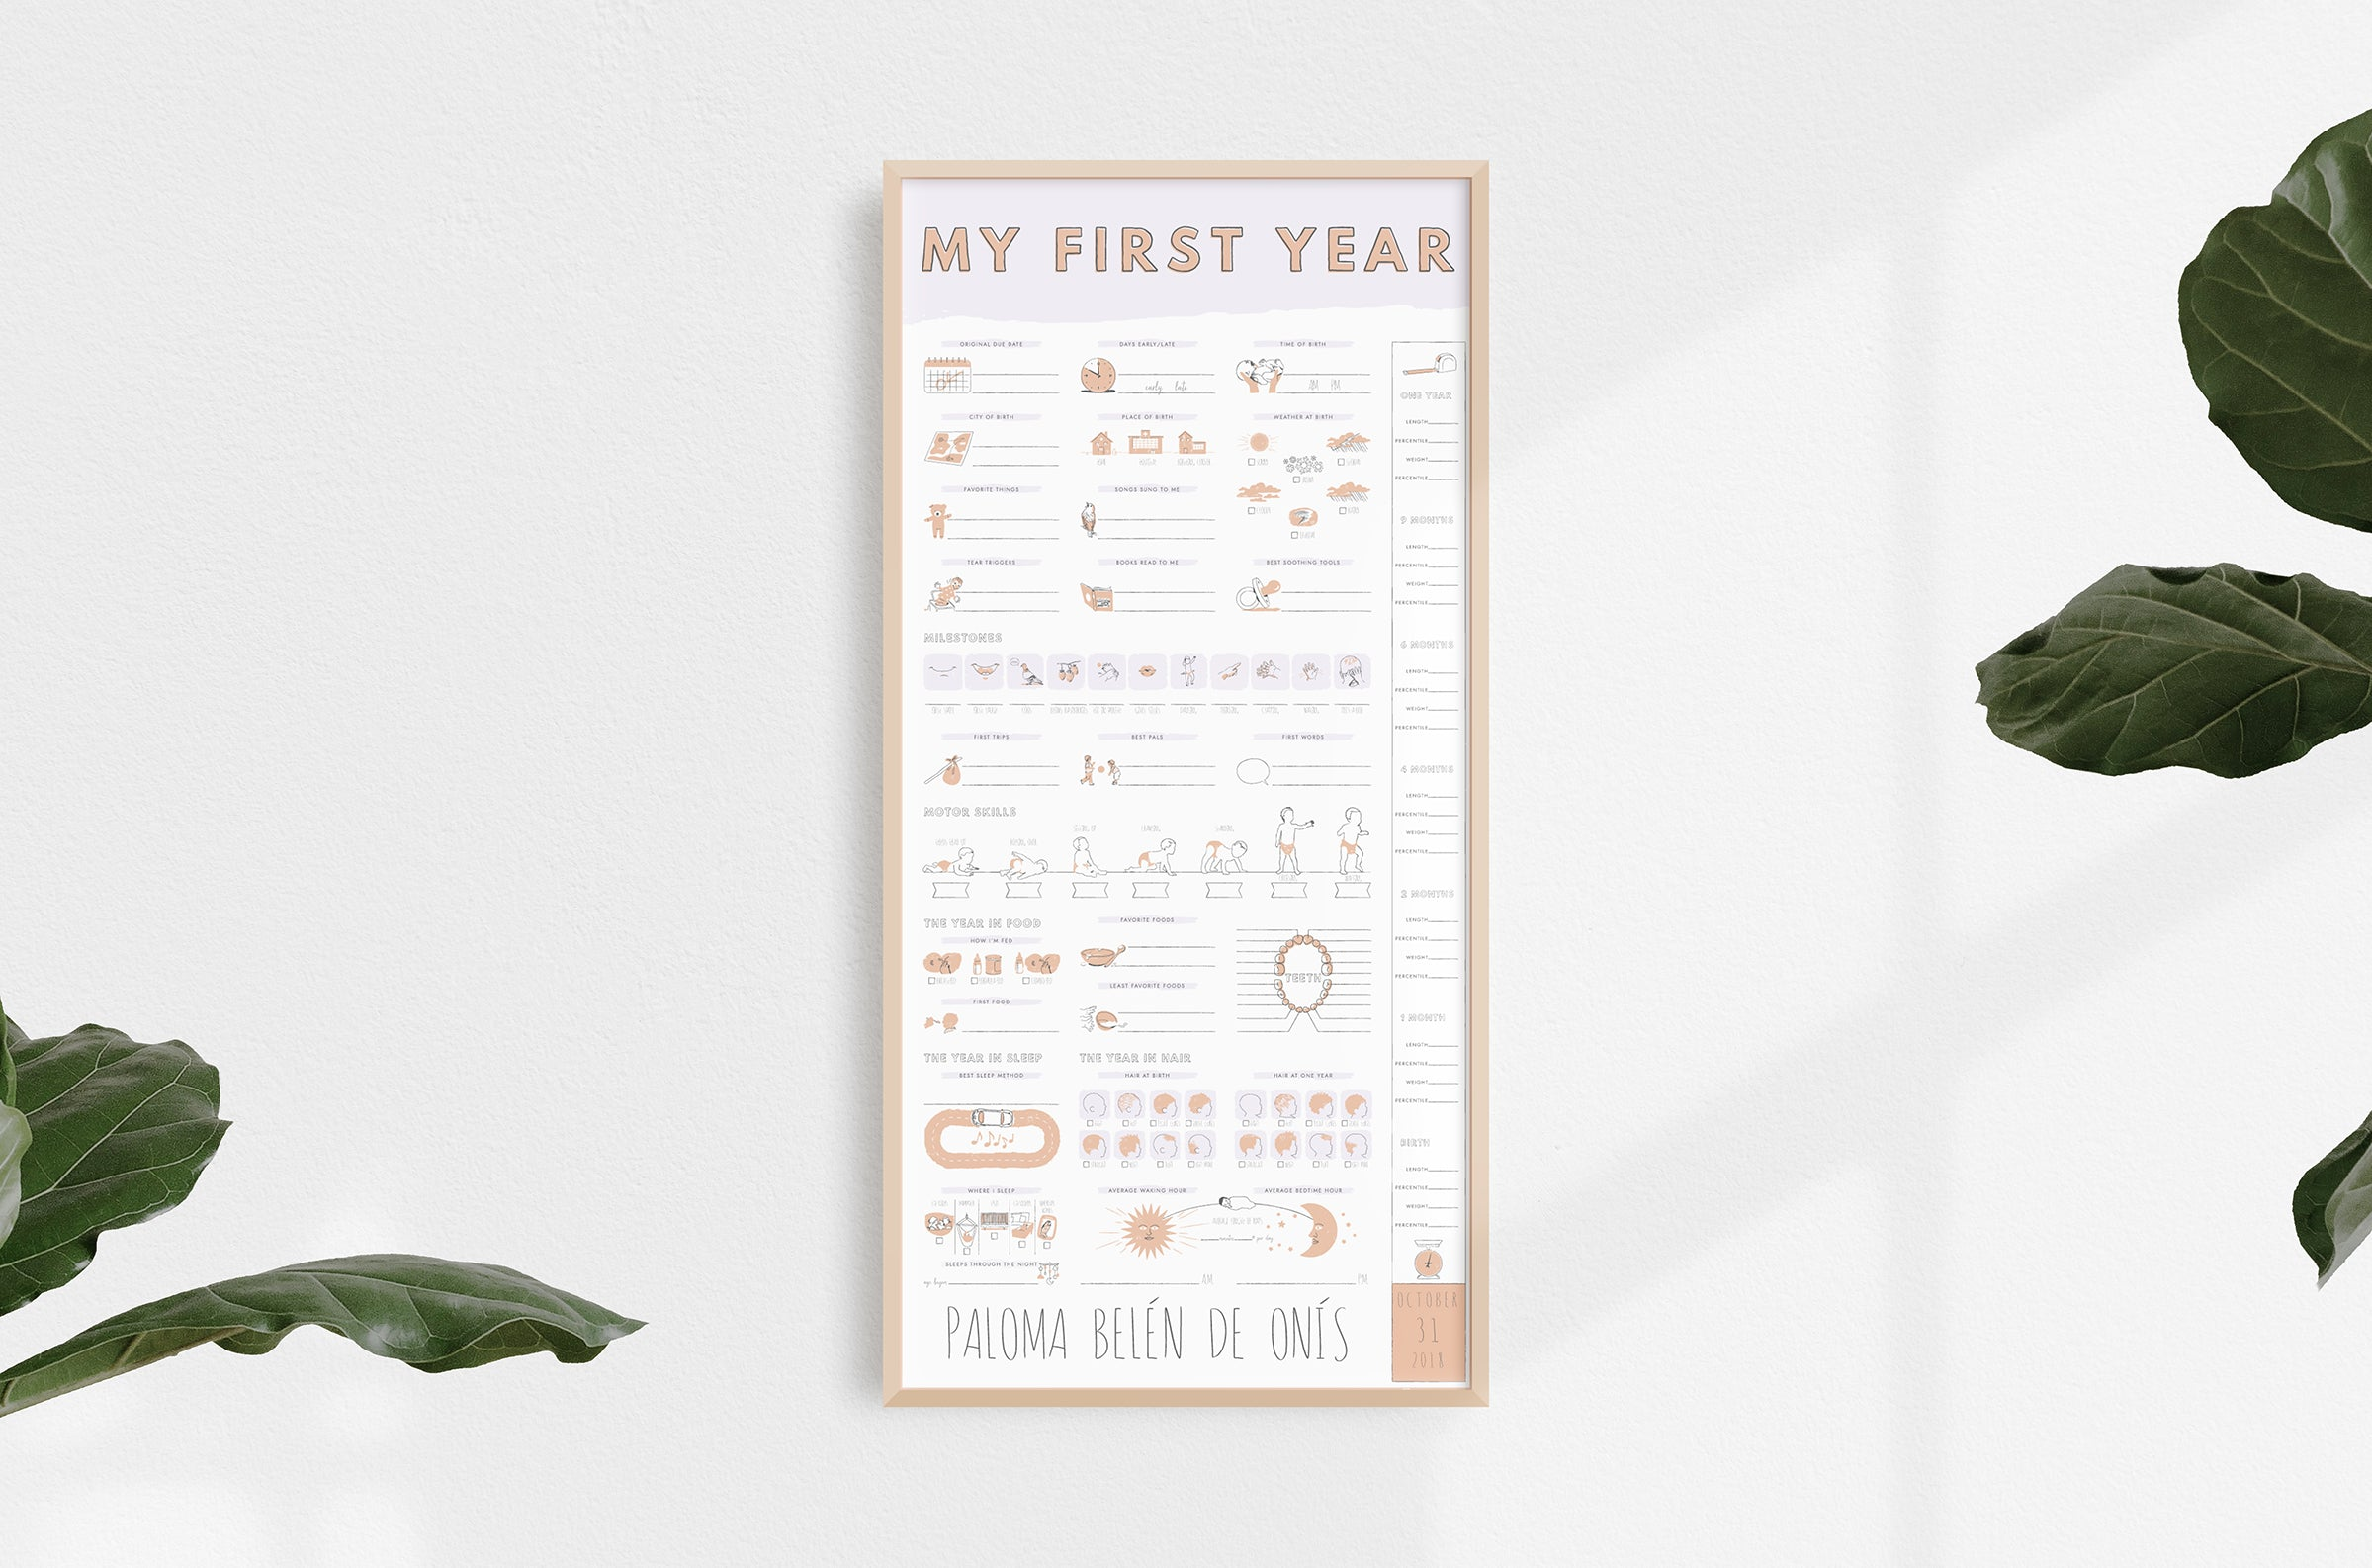 My First Year Poster - Simple